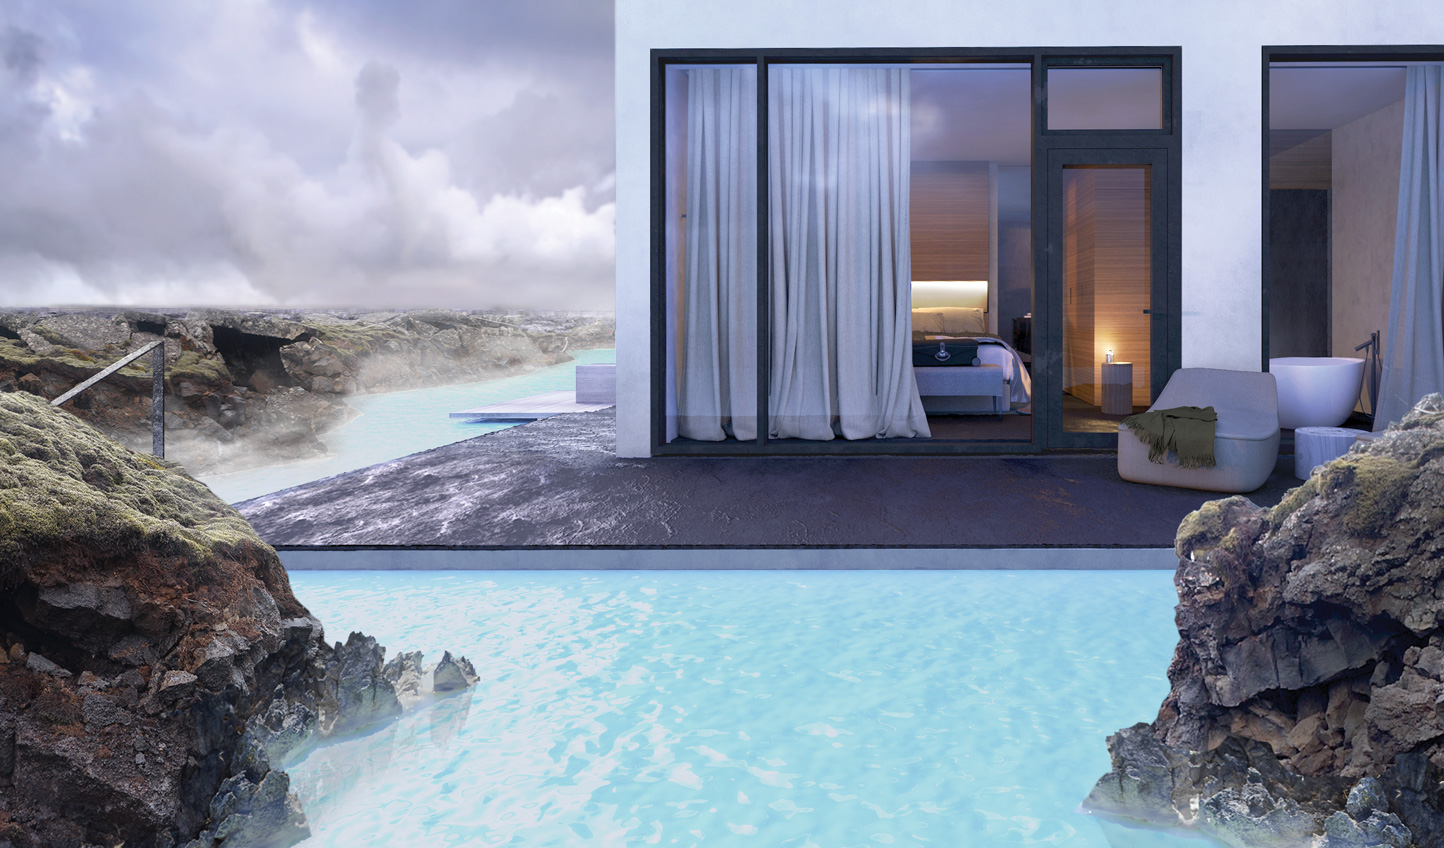 Dip your toes in the Blue Lagoon from the comfort of your suite